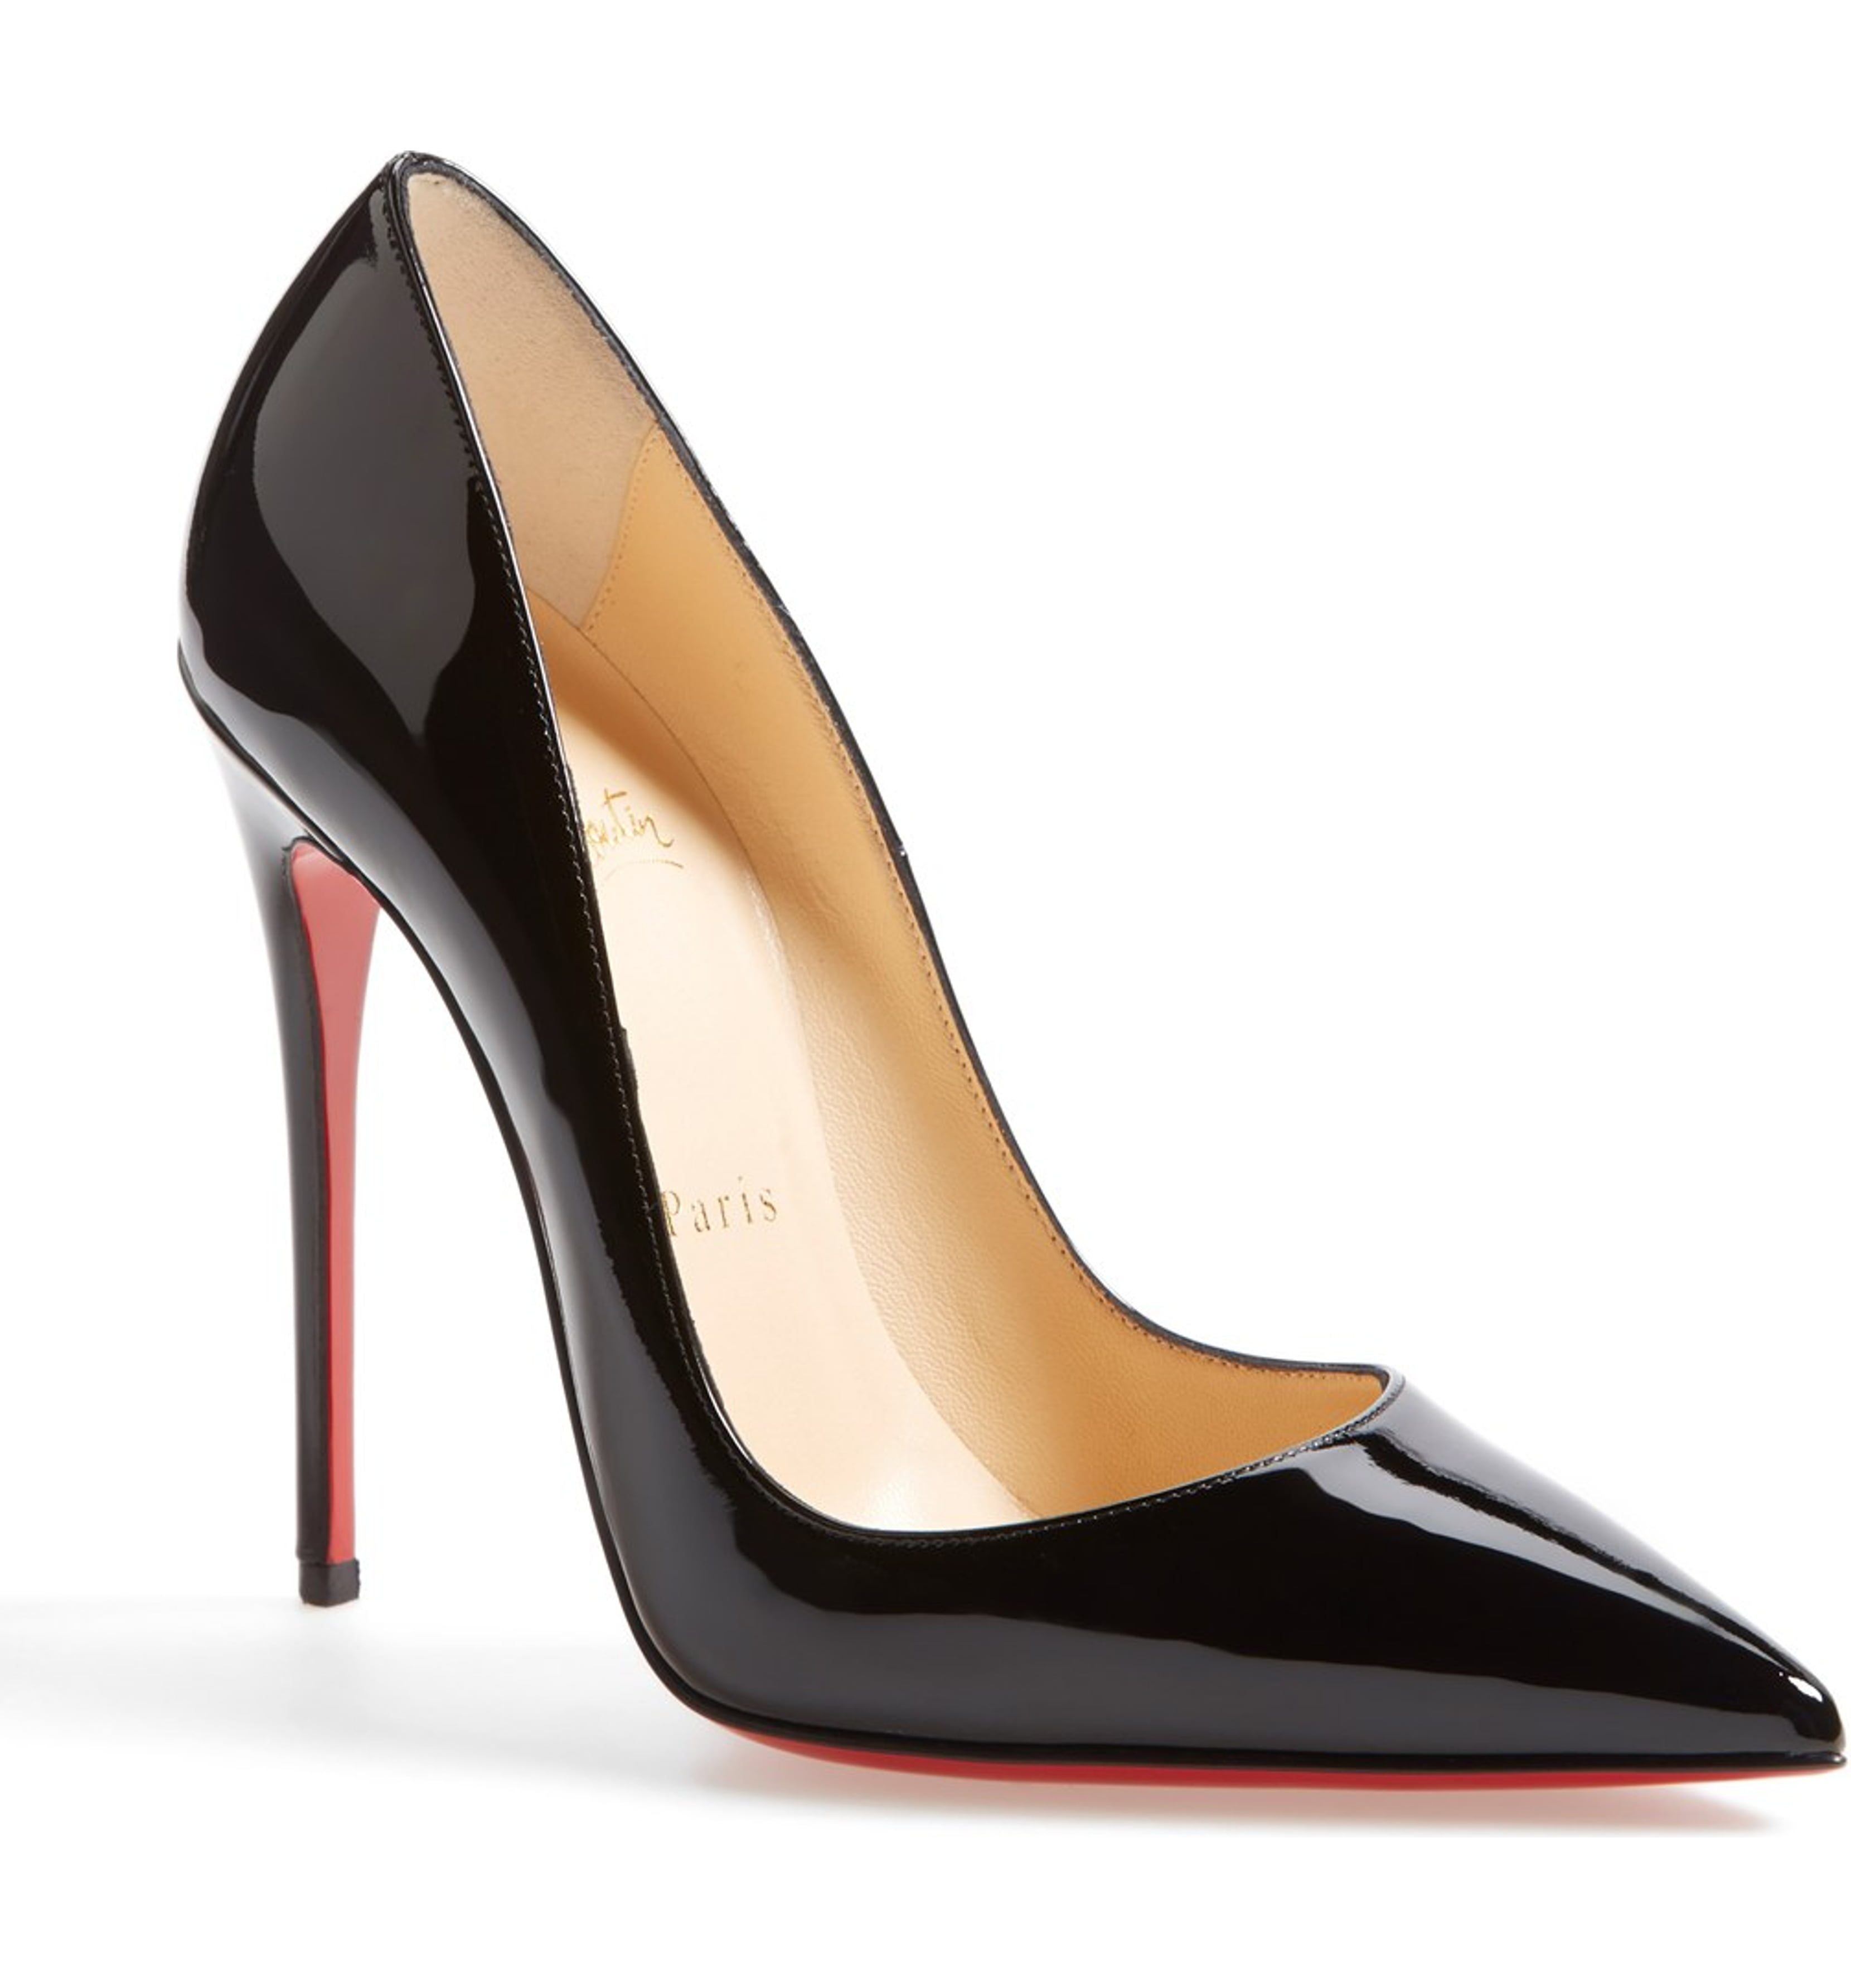 So Kate Pumps in Black Patent by Christian Louboutin, available on nordstrom.com for $725 Kylie Jenner Shoes Exact Product